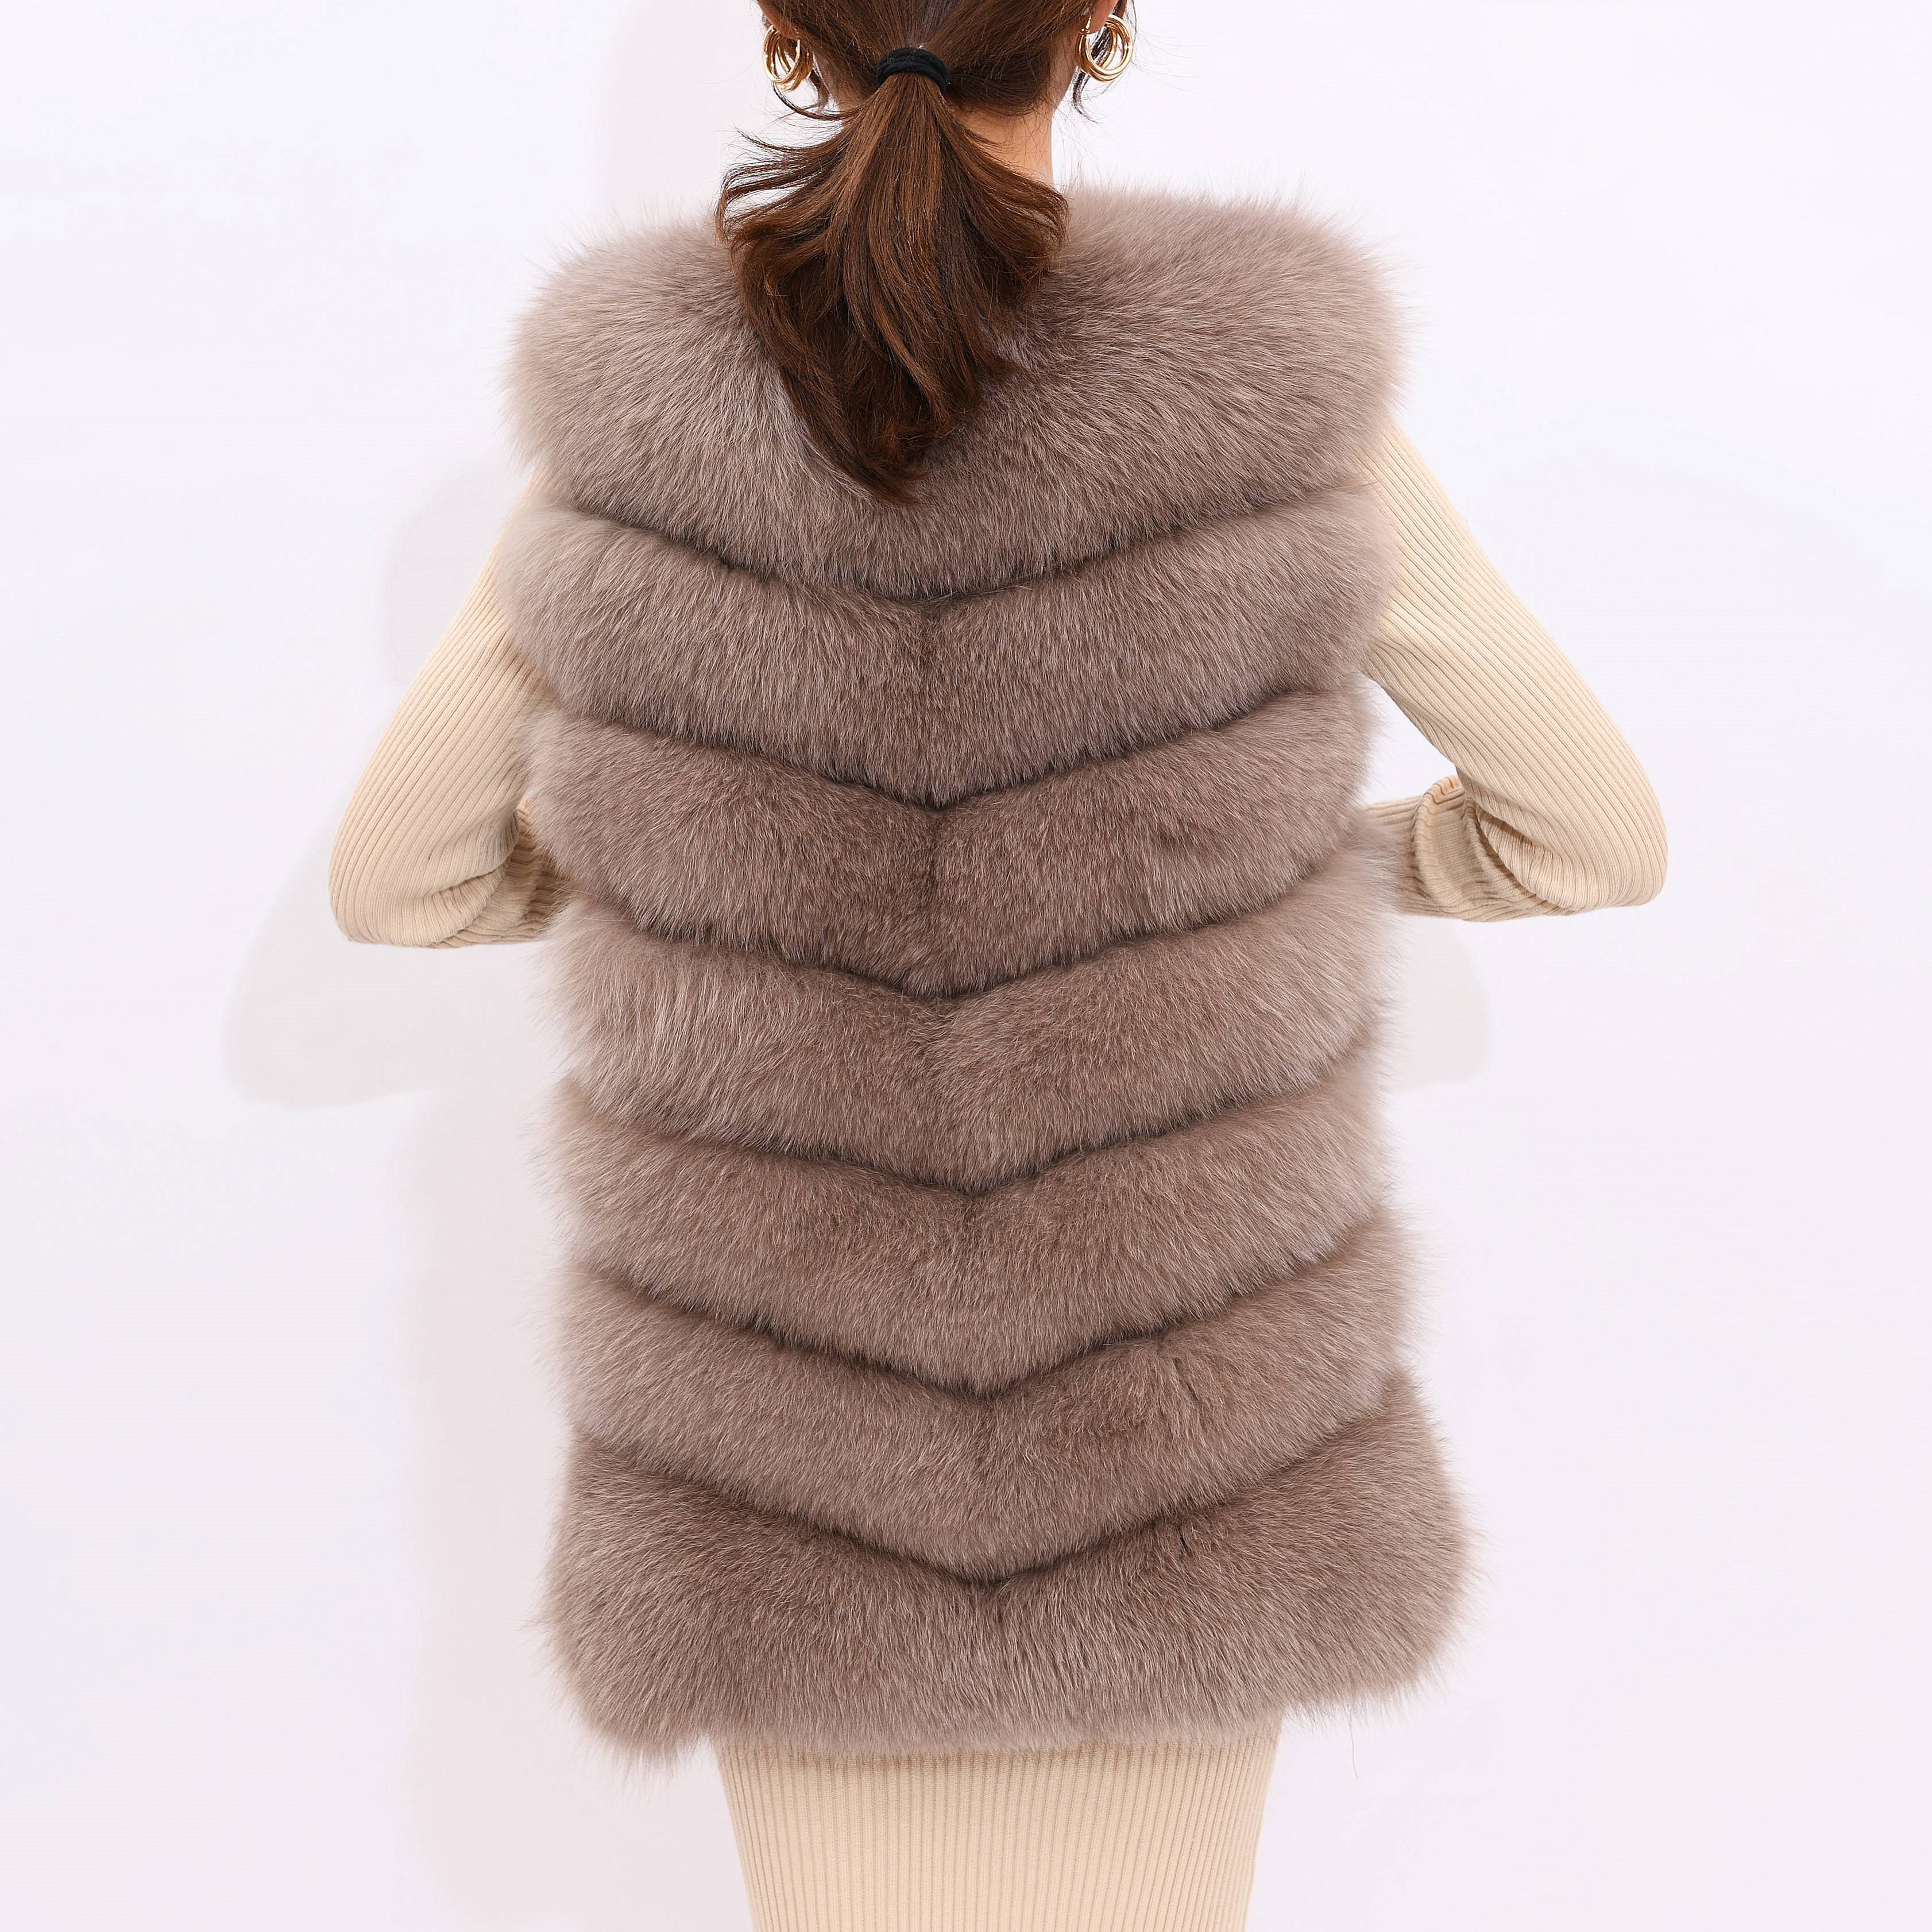 Image 2 - 2019 new women's winter real fox fur vest, real fox fur jacket, 100% natural real fur coat, high quality stylish warm sleeveless-in Real Fur from Women's Clothing